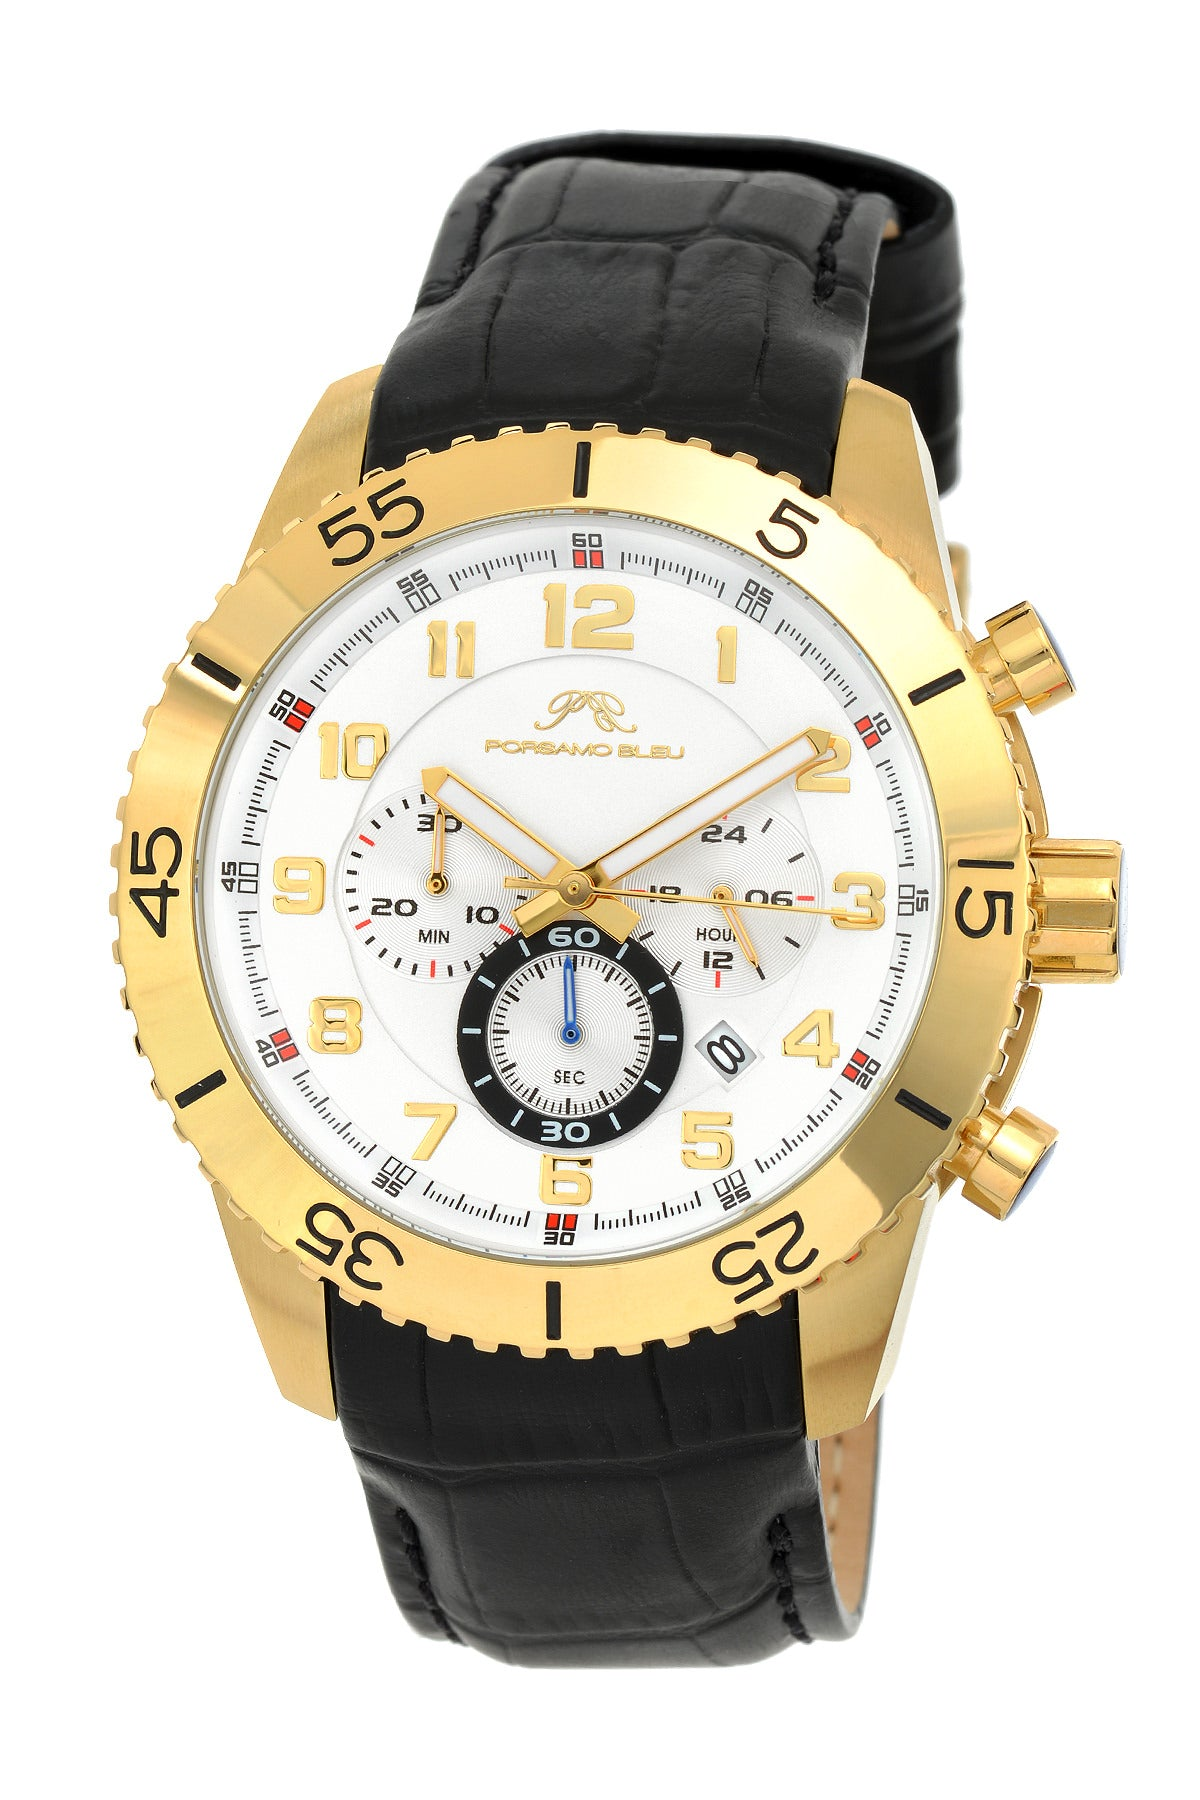 Porsamo Bleu Tristan luxury chronograph men's watch, genuine leather band, gold, black 591BTRL